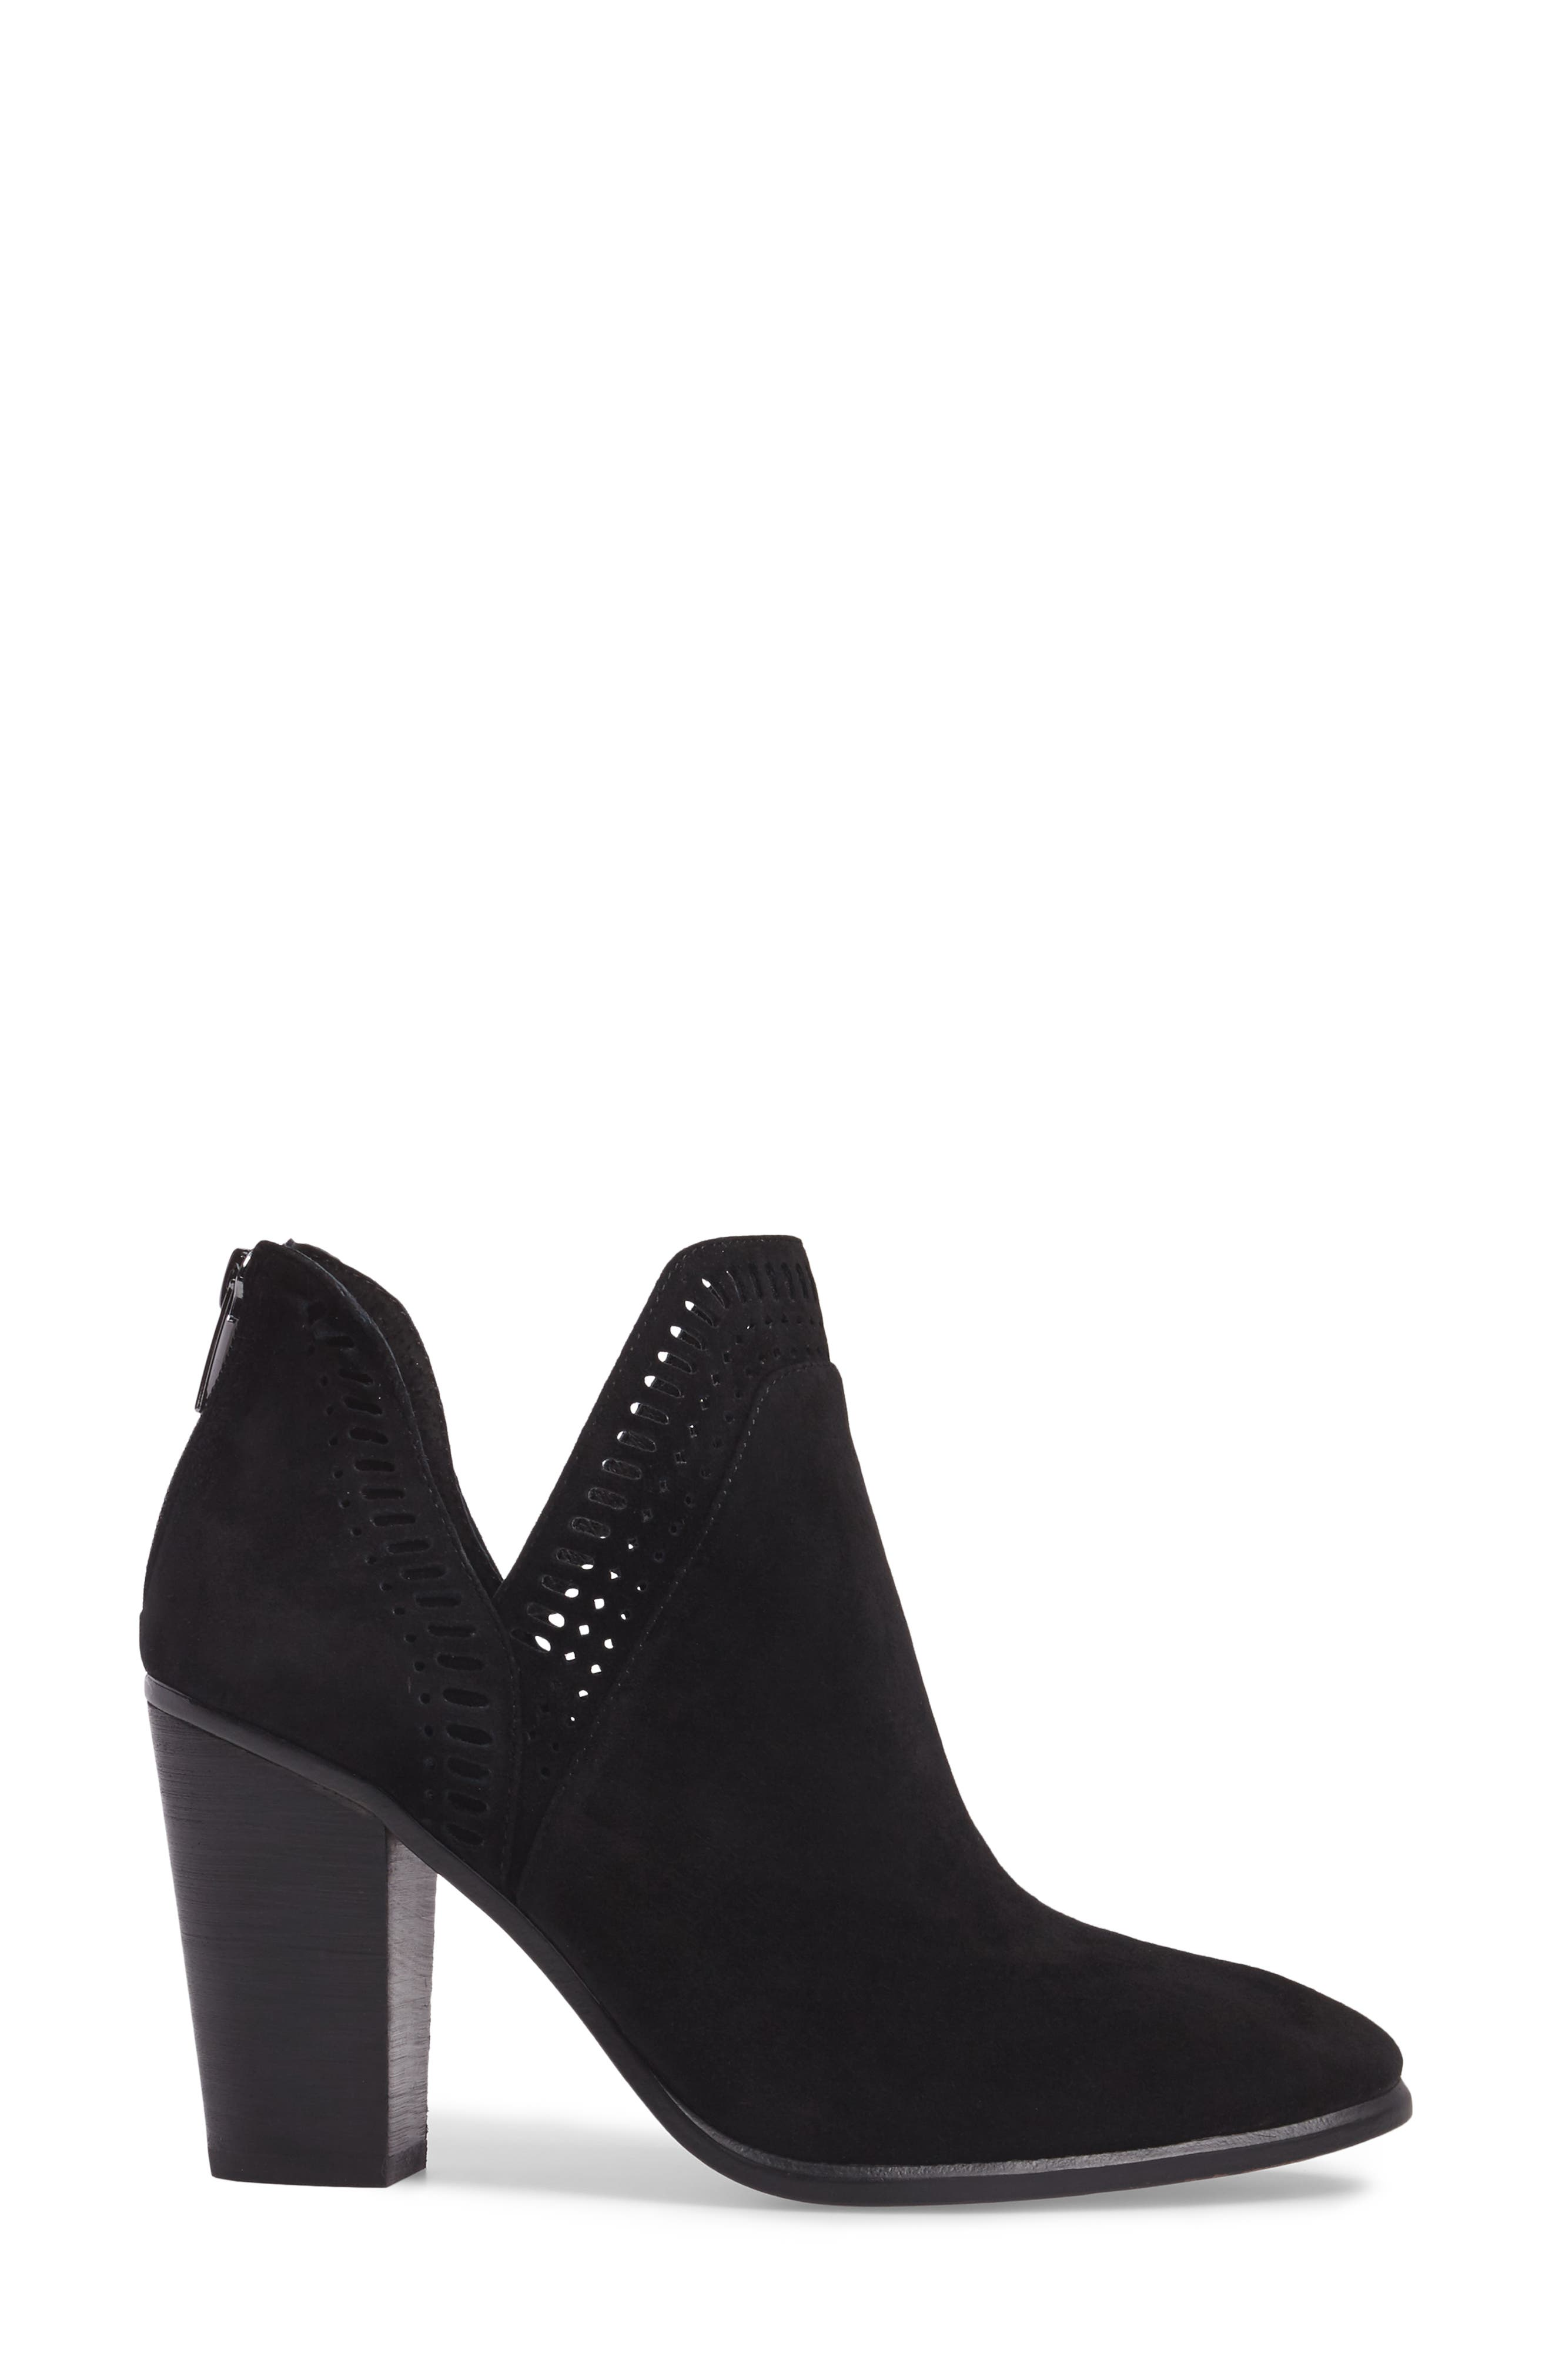 VINCE CAMUTO, Fileana Split Shaft Bootie, Alternate thumbnail 3, color, 001